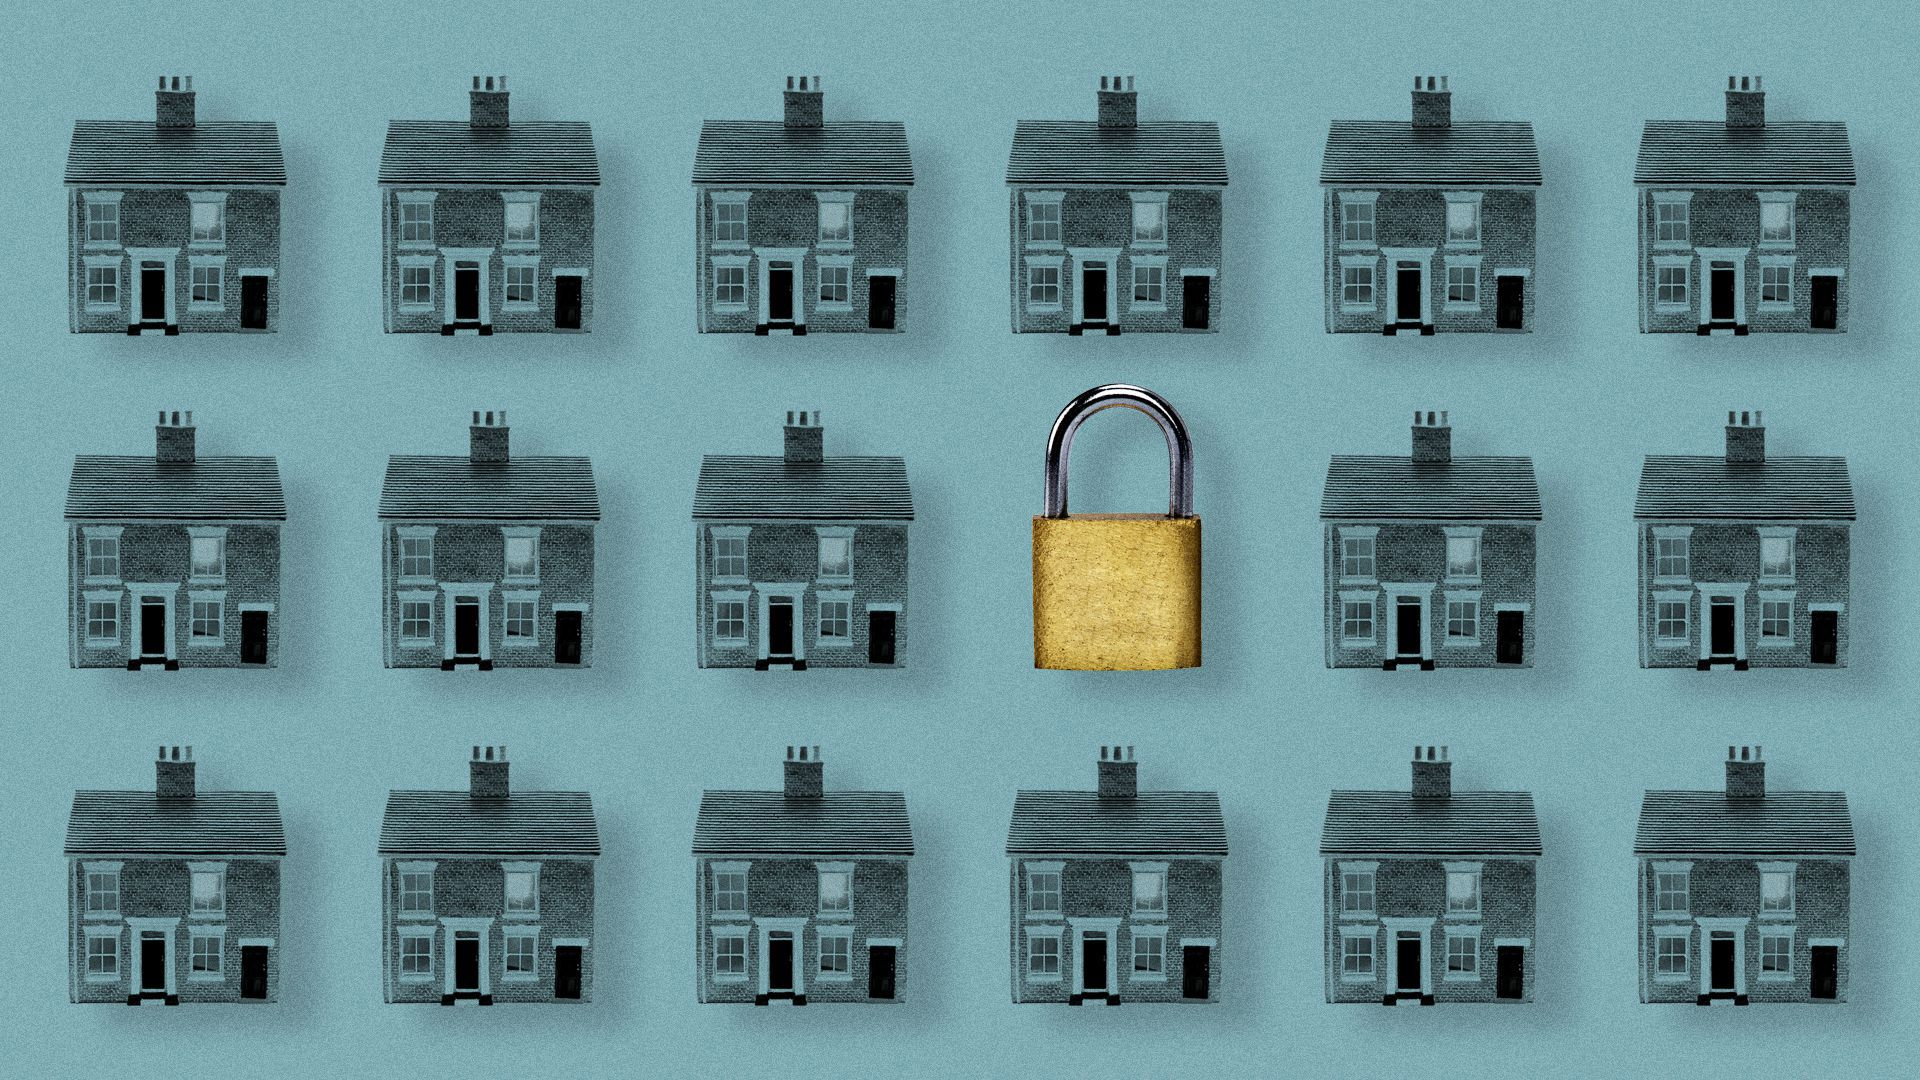 Three rows of identical houses on a blue background, with one of the houses replaced with a lock.